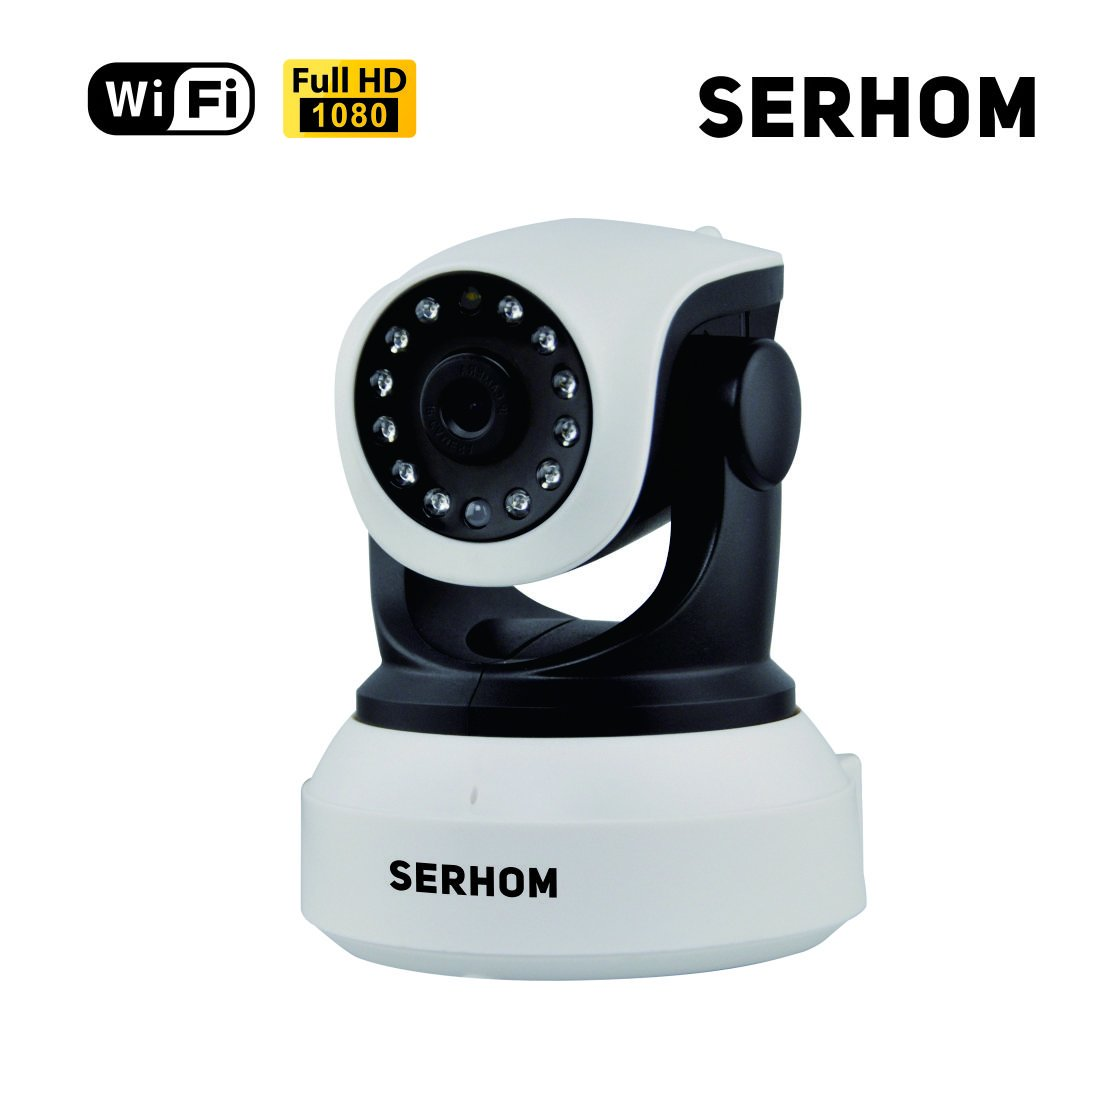 SERHOM IP Camera WIFI 1080P,Wireless Surveillance Camera,Network webcam,Two way Audio Microphone inside,Onekey WIFI Setting,Pan/Tilt Movement,Night Vision Baby Pet Video Monitor